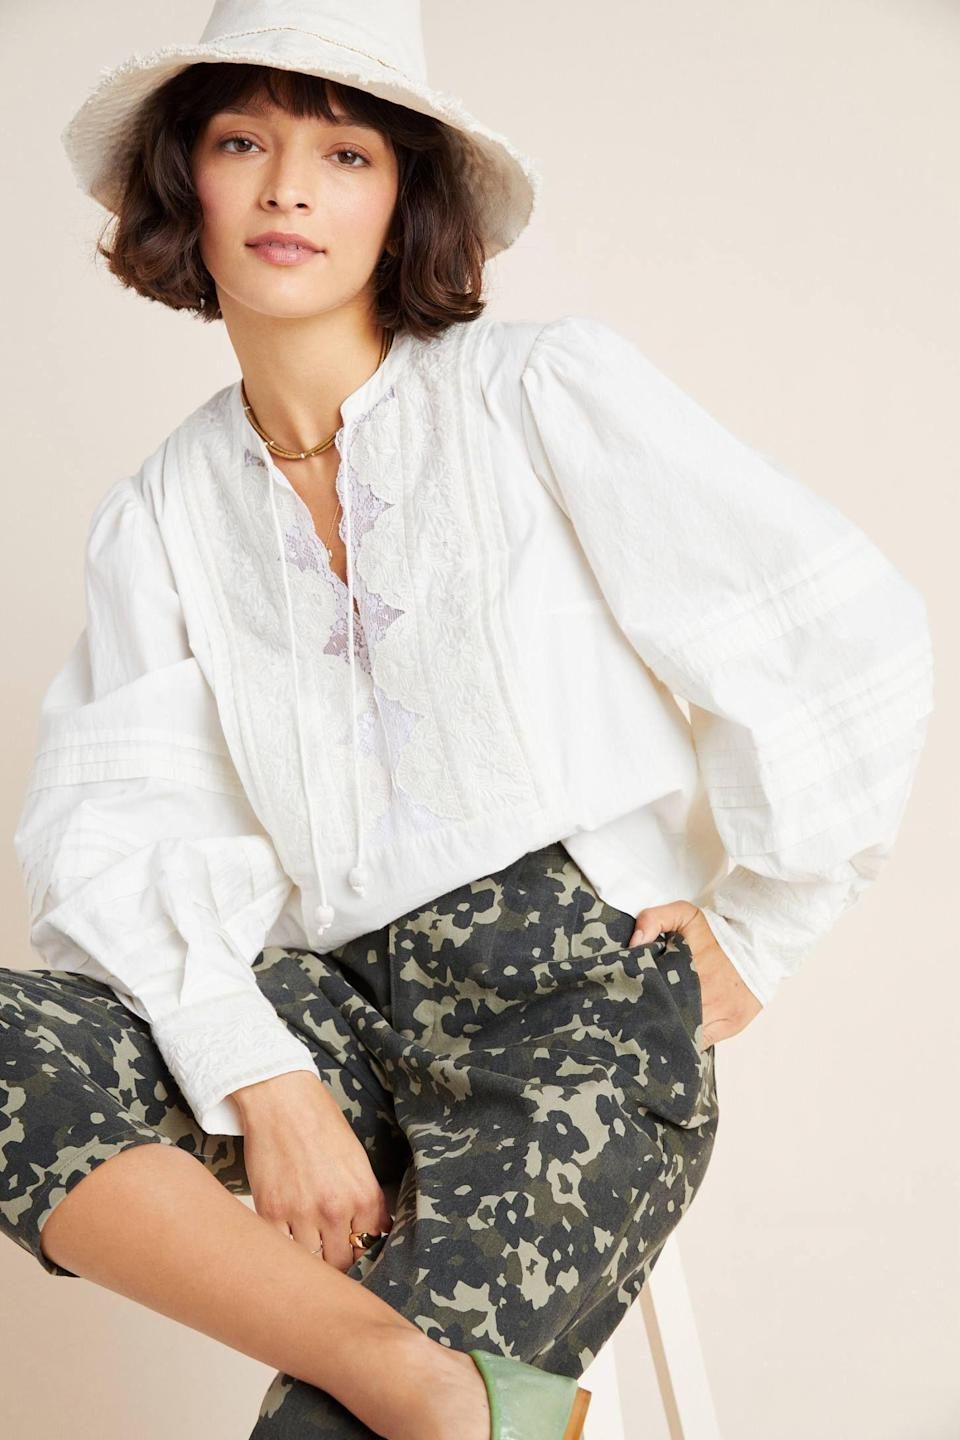 "<p><strong>Anthropologie Anthropologie</strong></p><p>anthropologie.com</p><p><a href=""https://go.redirectingat.com?id=74968X1596630&url=https%3A%2F%2Fwww.anthropologie.com%2Fshop%2Fdelilah-pleated-lace-peasant-blouse&sref=https%3A%2F%2Fwww.townandcountrymag.com%2Fstyle%2Ffashion-trends%2Fg32969328%2Fanthropologie-summer-sale-june-2020%2F"" rel=""nofollow noopener"" target=""_blank"" data-ylk=""slk:Shop Now"" class=""link rapid-noclick-resp"">Shop Now</a></p><p>$39.95</p><p><em>Original Price: $118</em></p>"